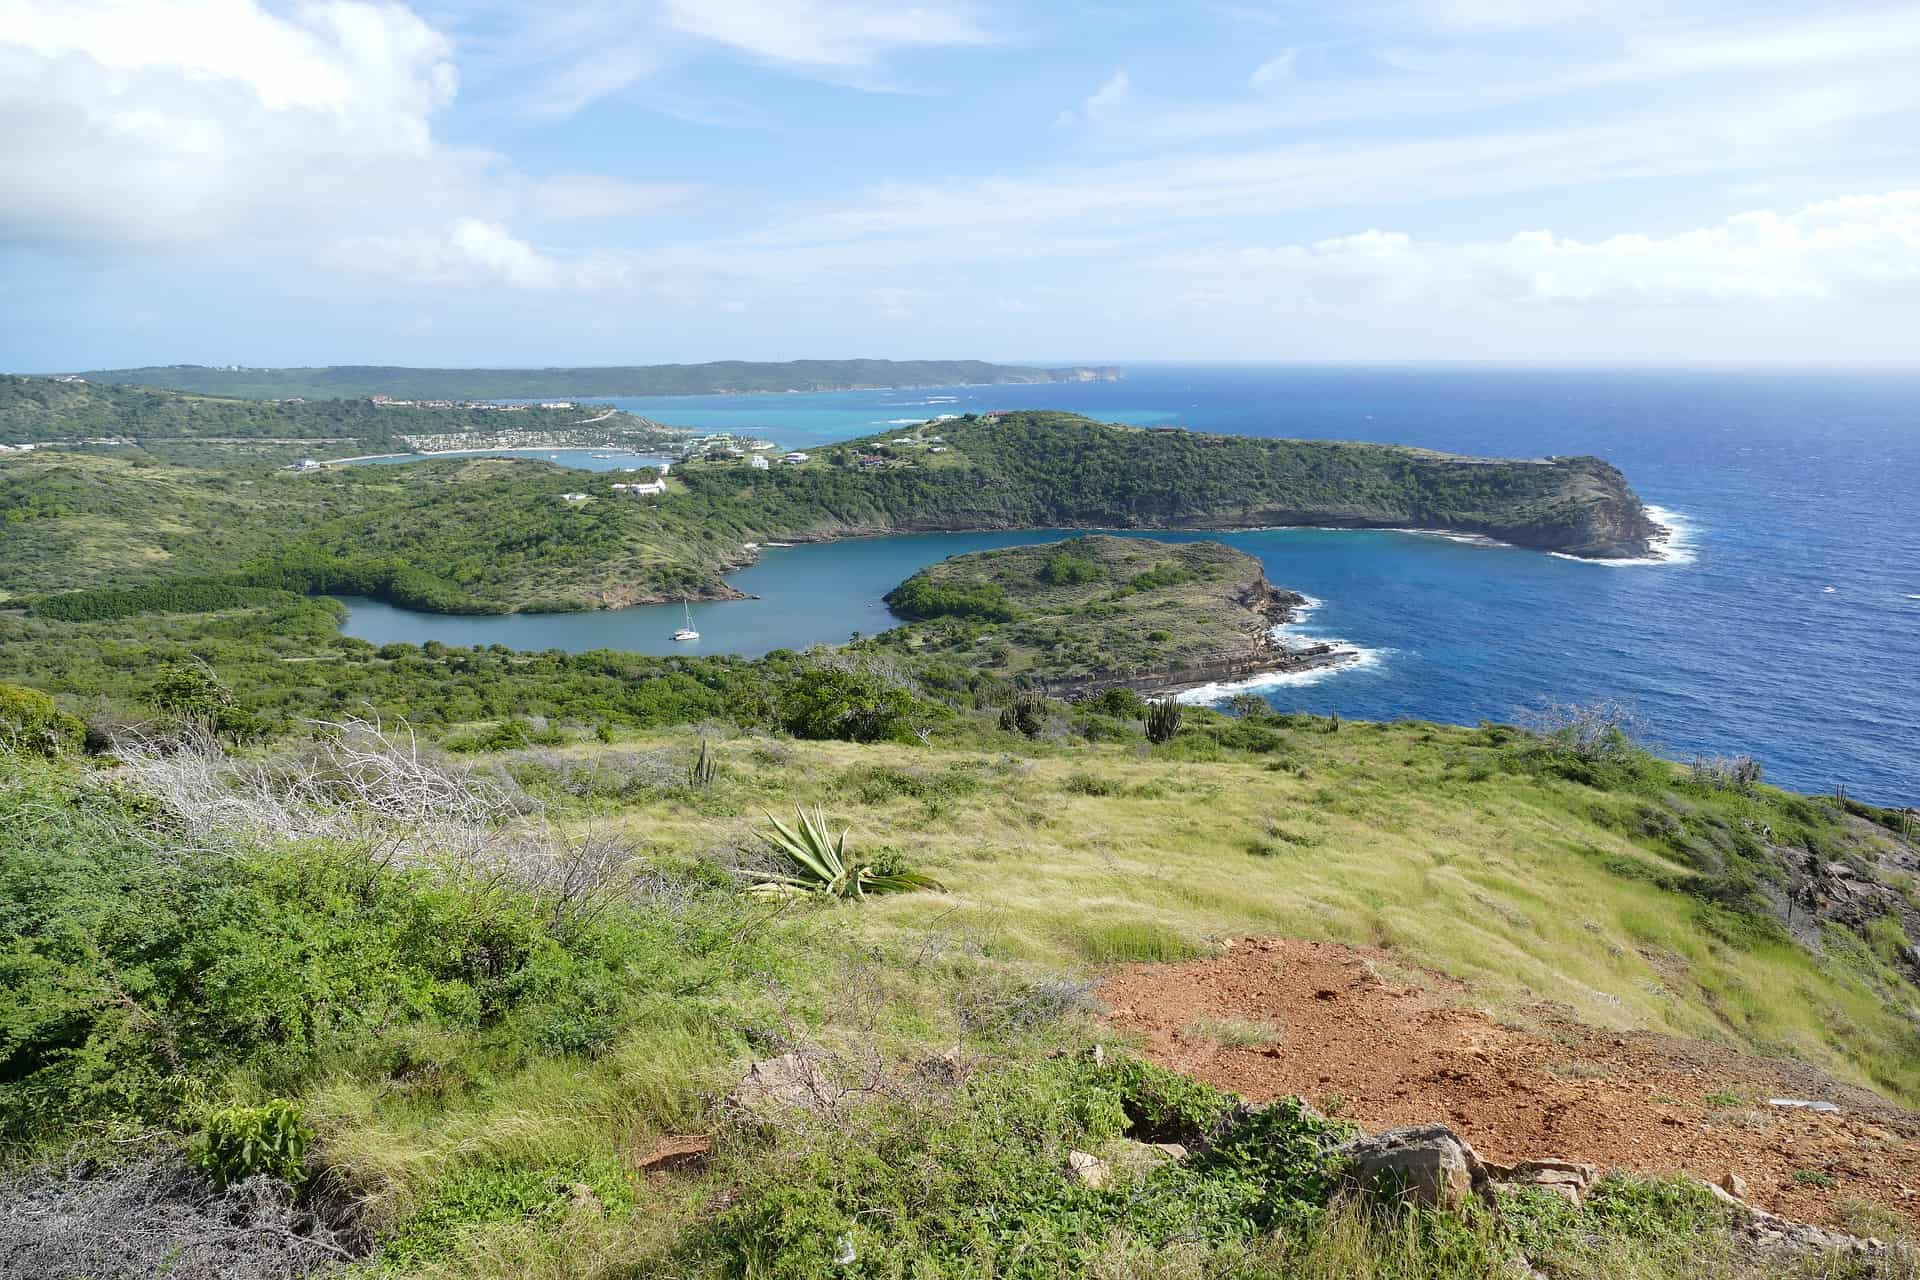 St John's, Antigua Safari